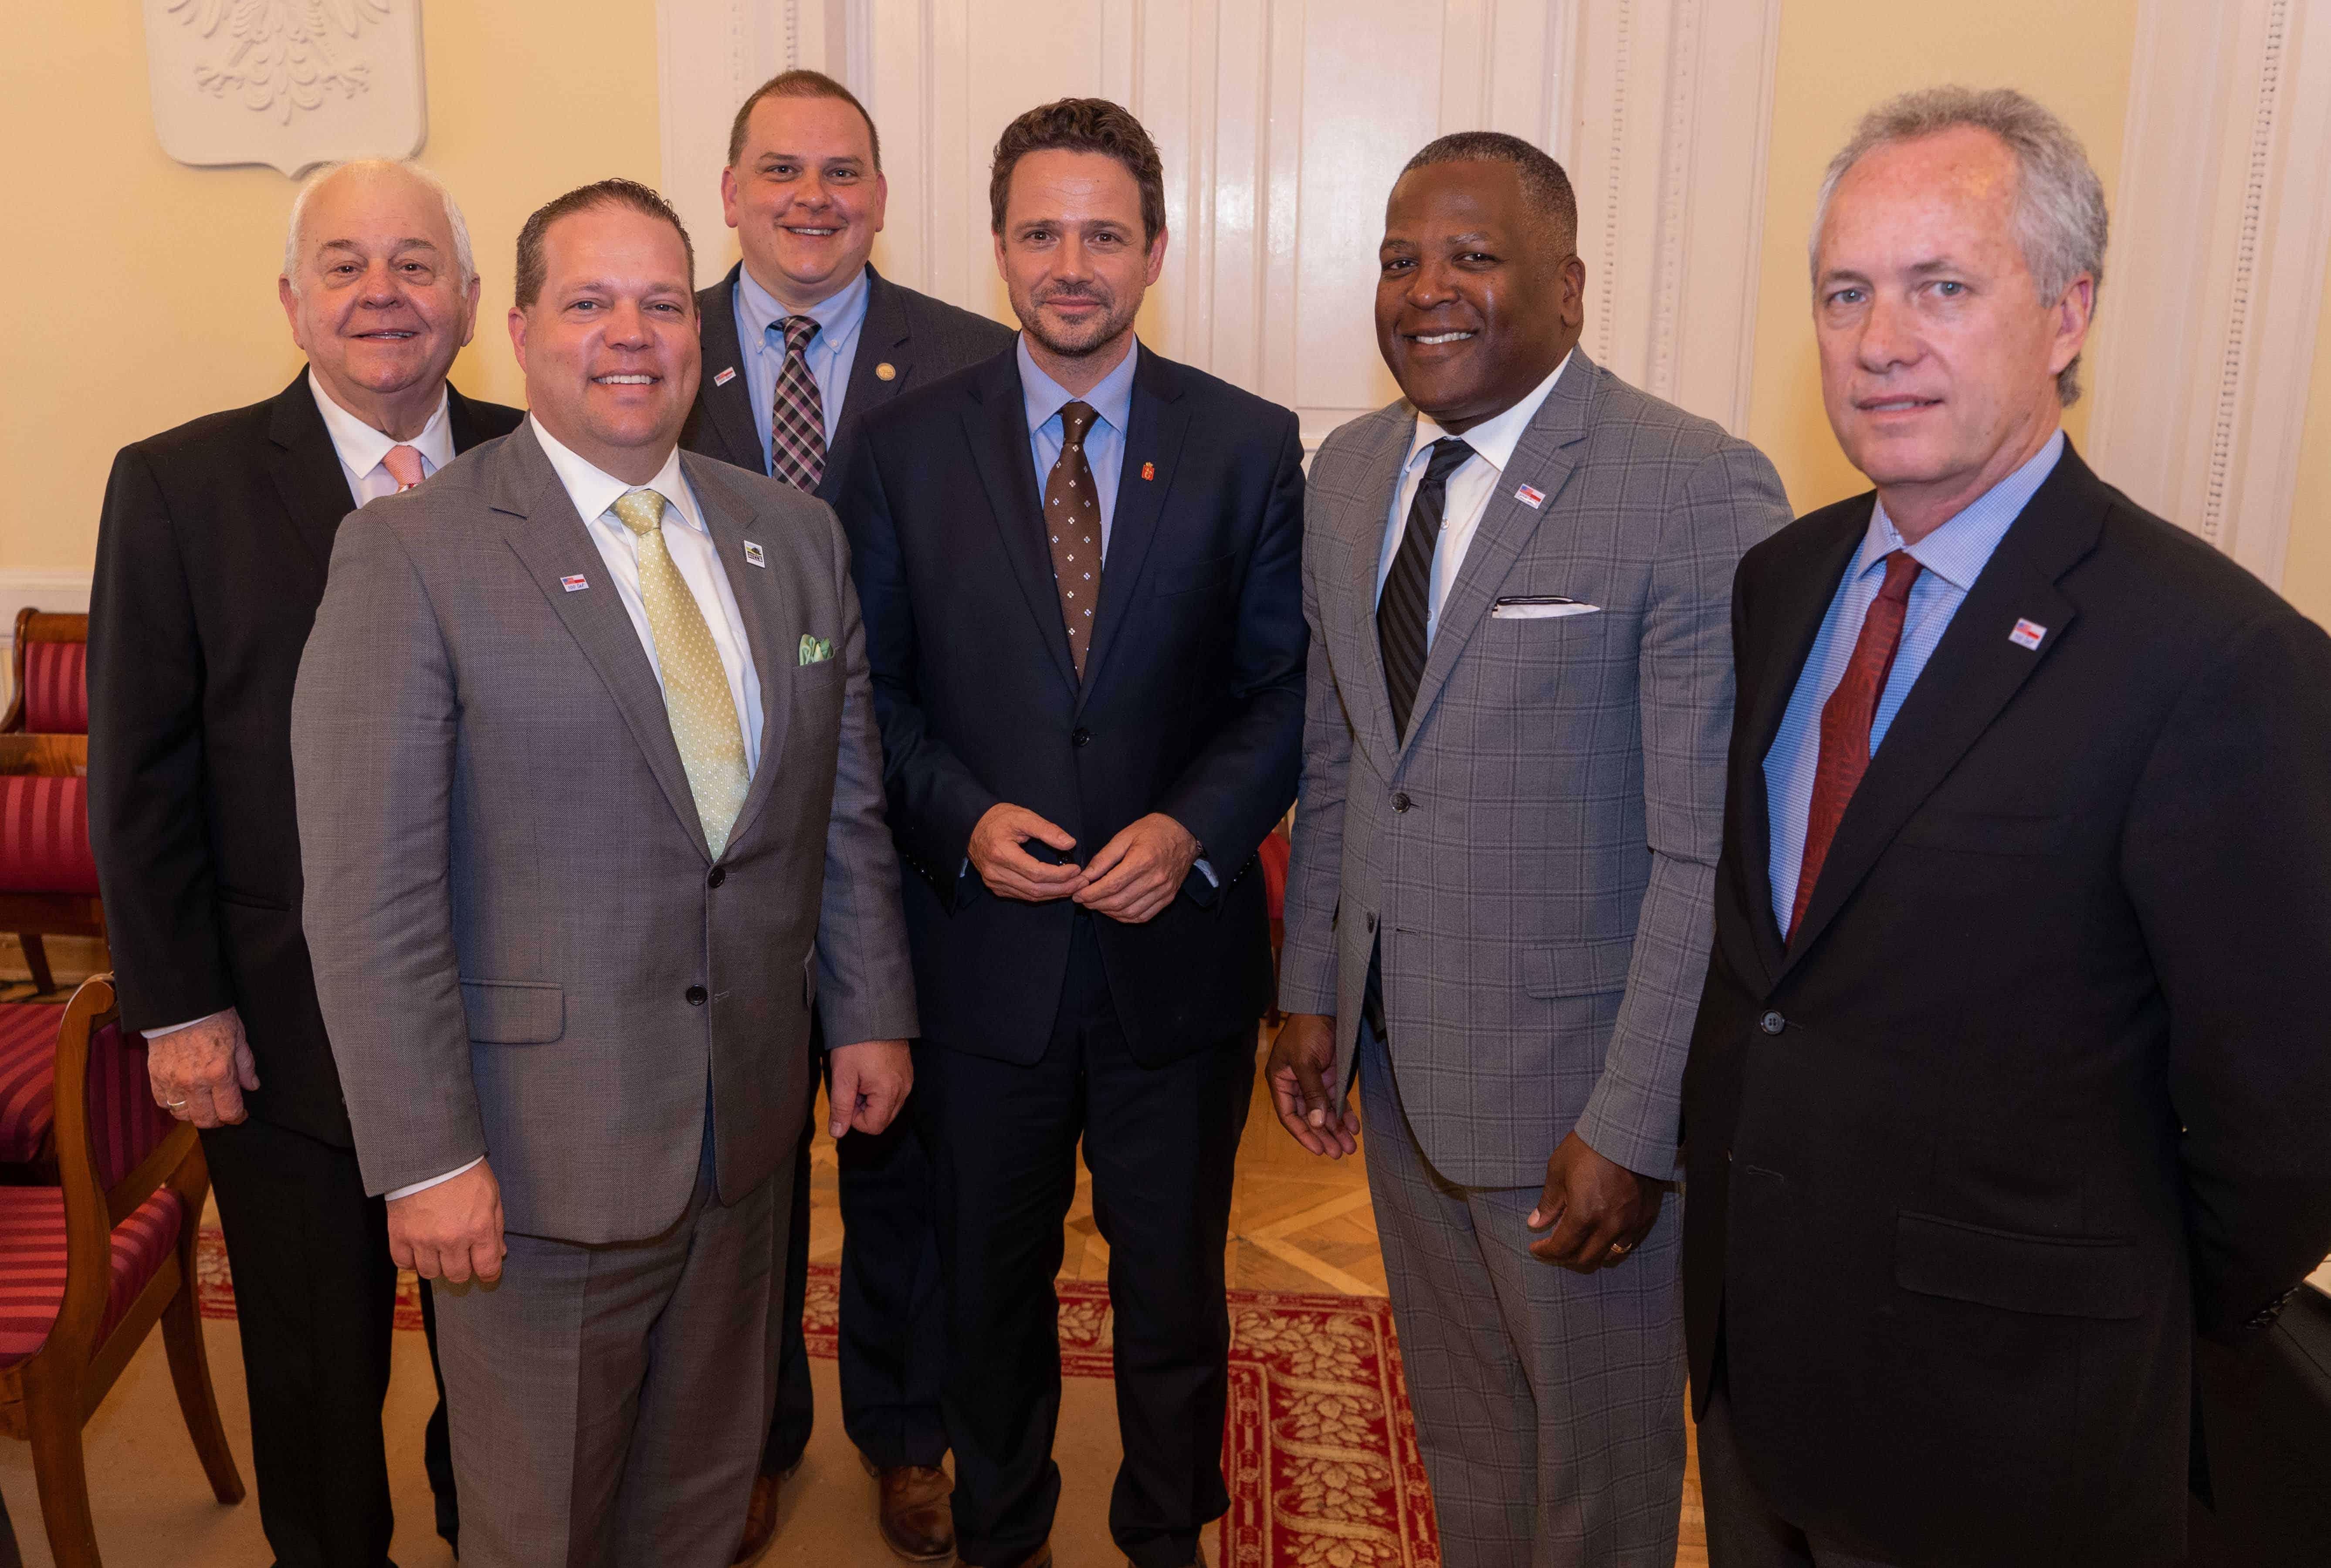 Meetings - United States Conference of Mayors